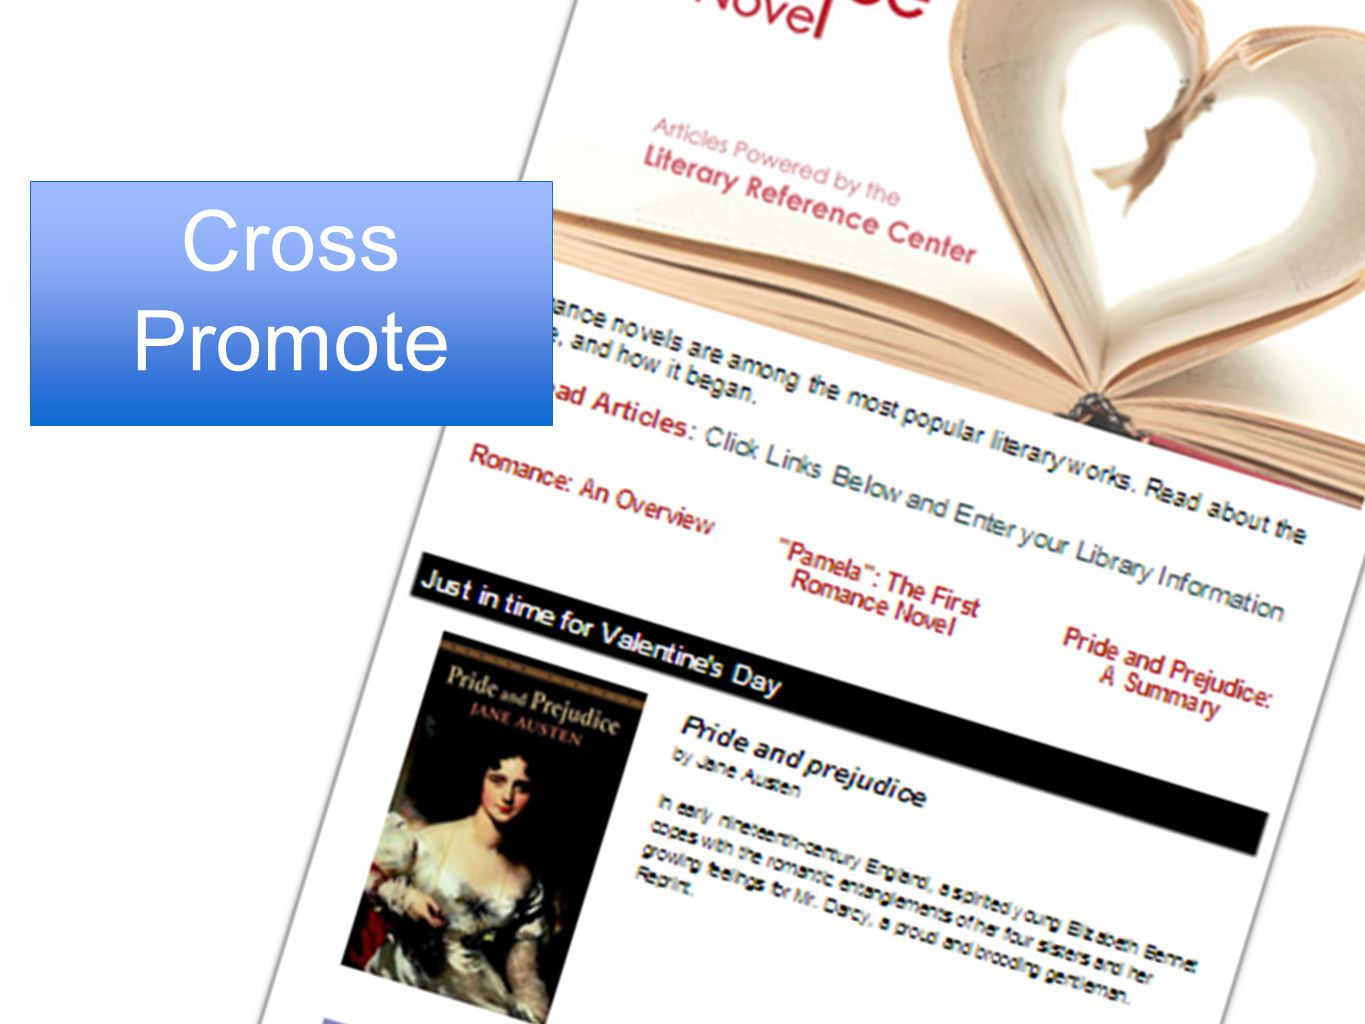 Cross Promote